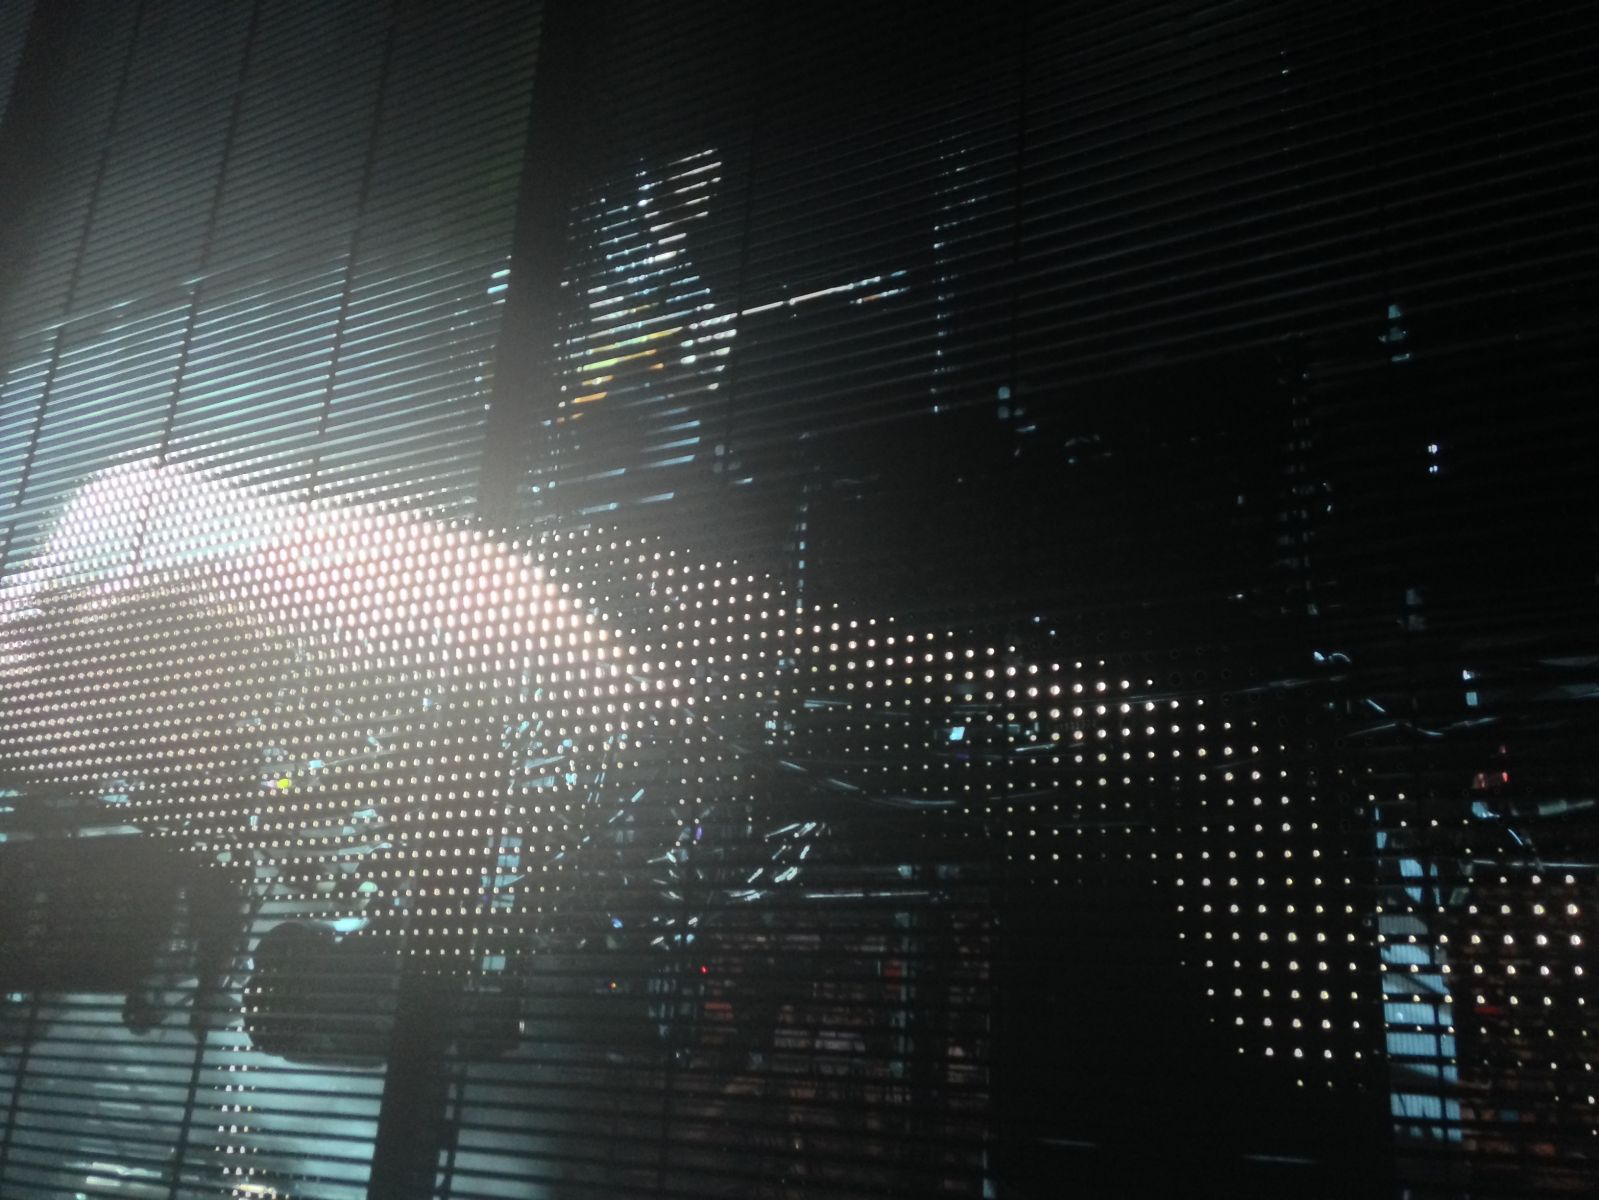 Bono's giant projector hand poking at Edge inside the screens